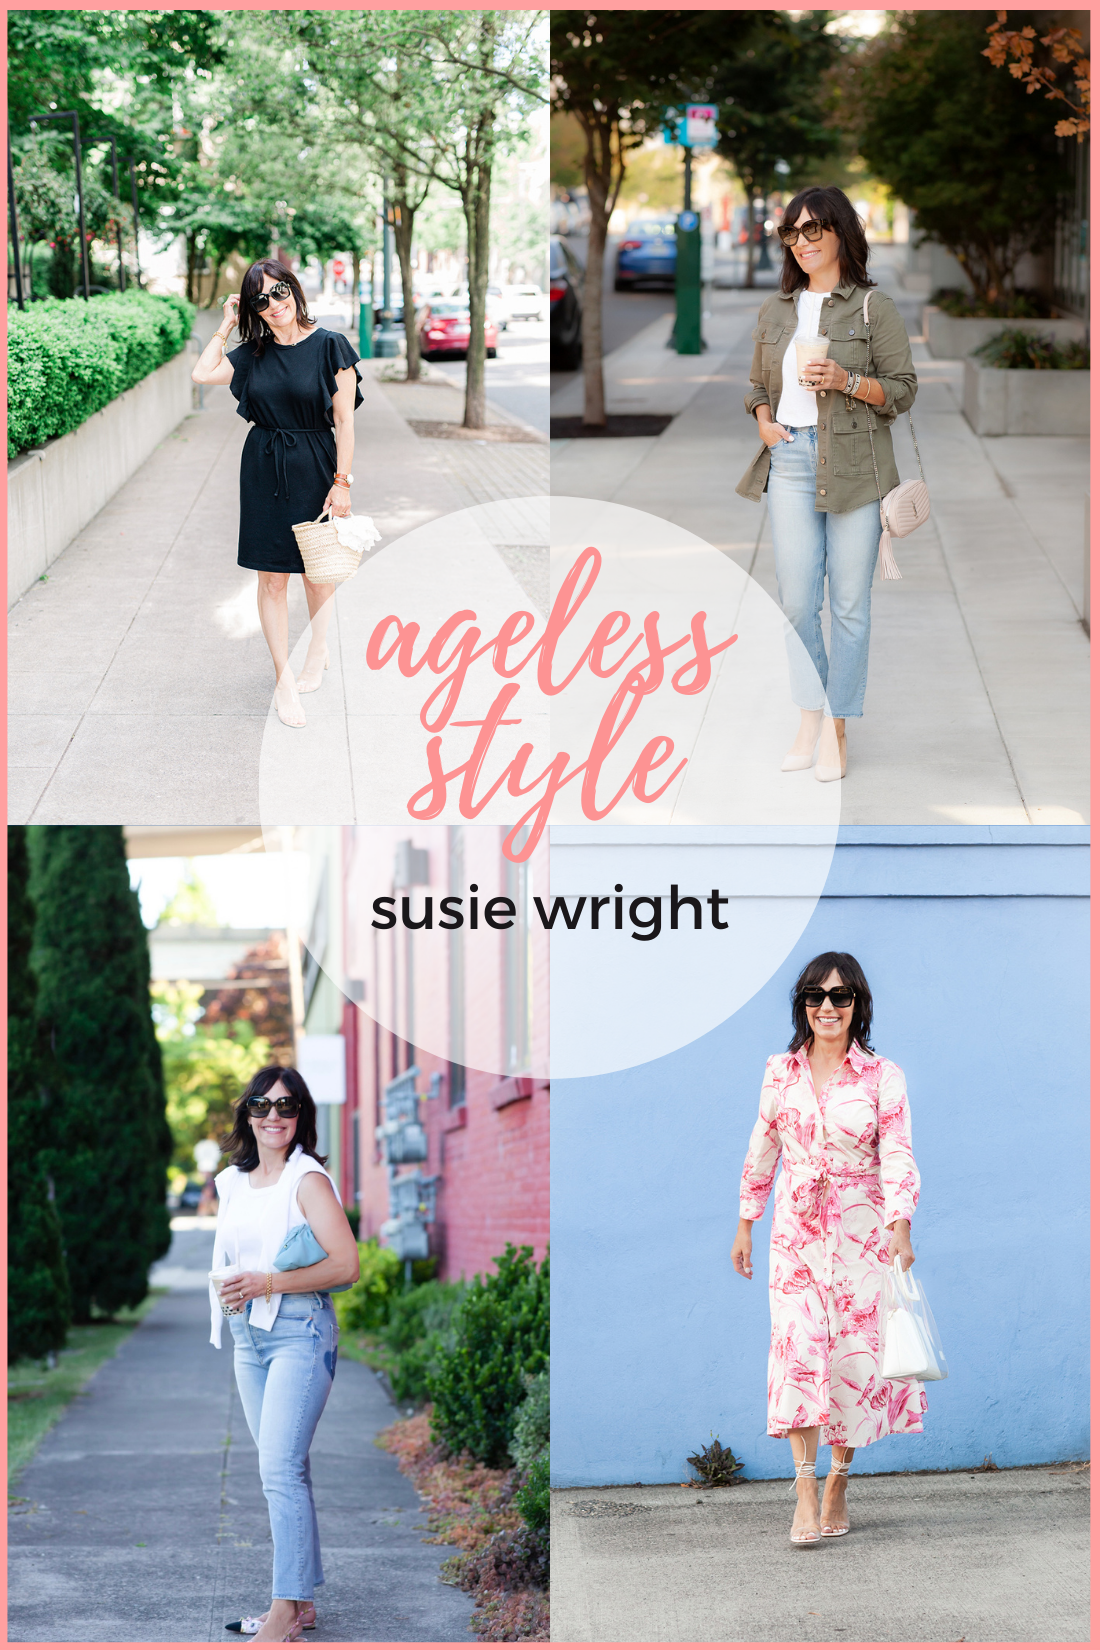 Cindy Hattersey's Ageless Style featuring Susie Wright